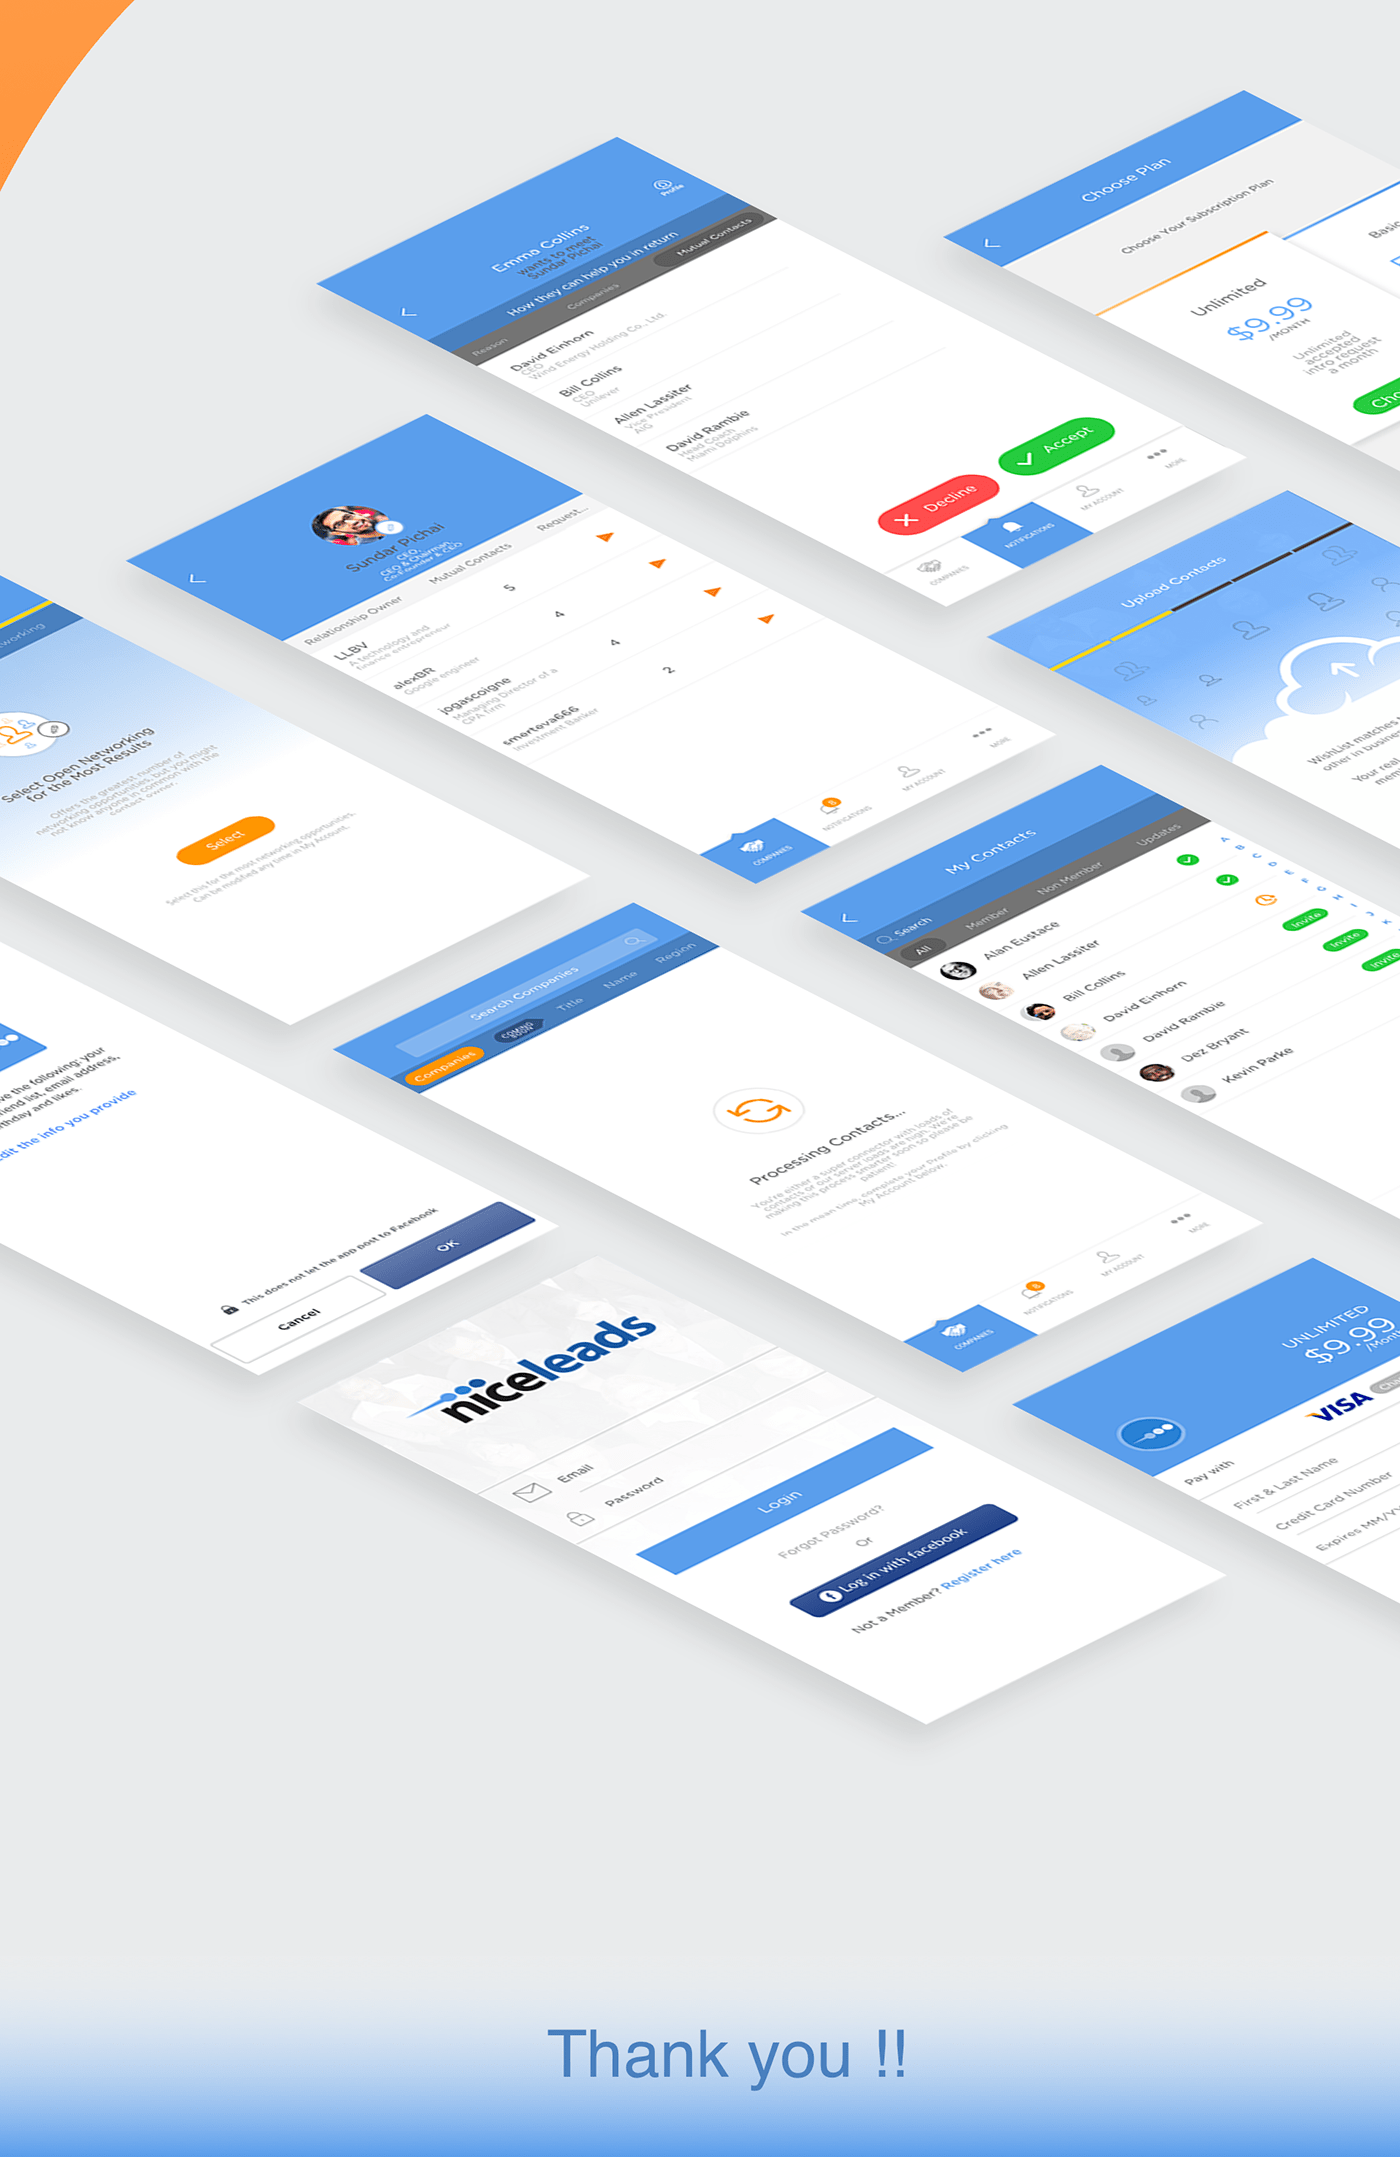 corporate UI ios Appdesign networking people